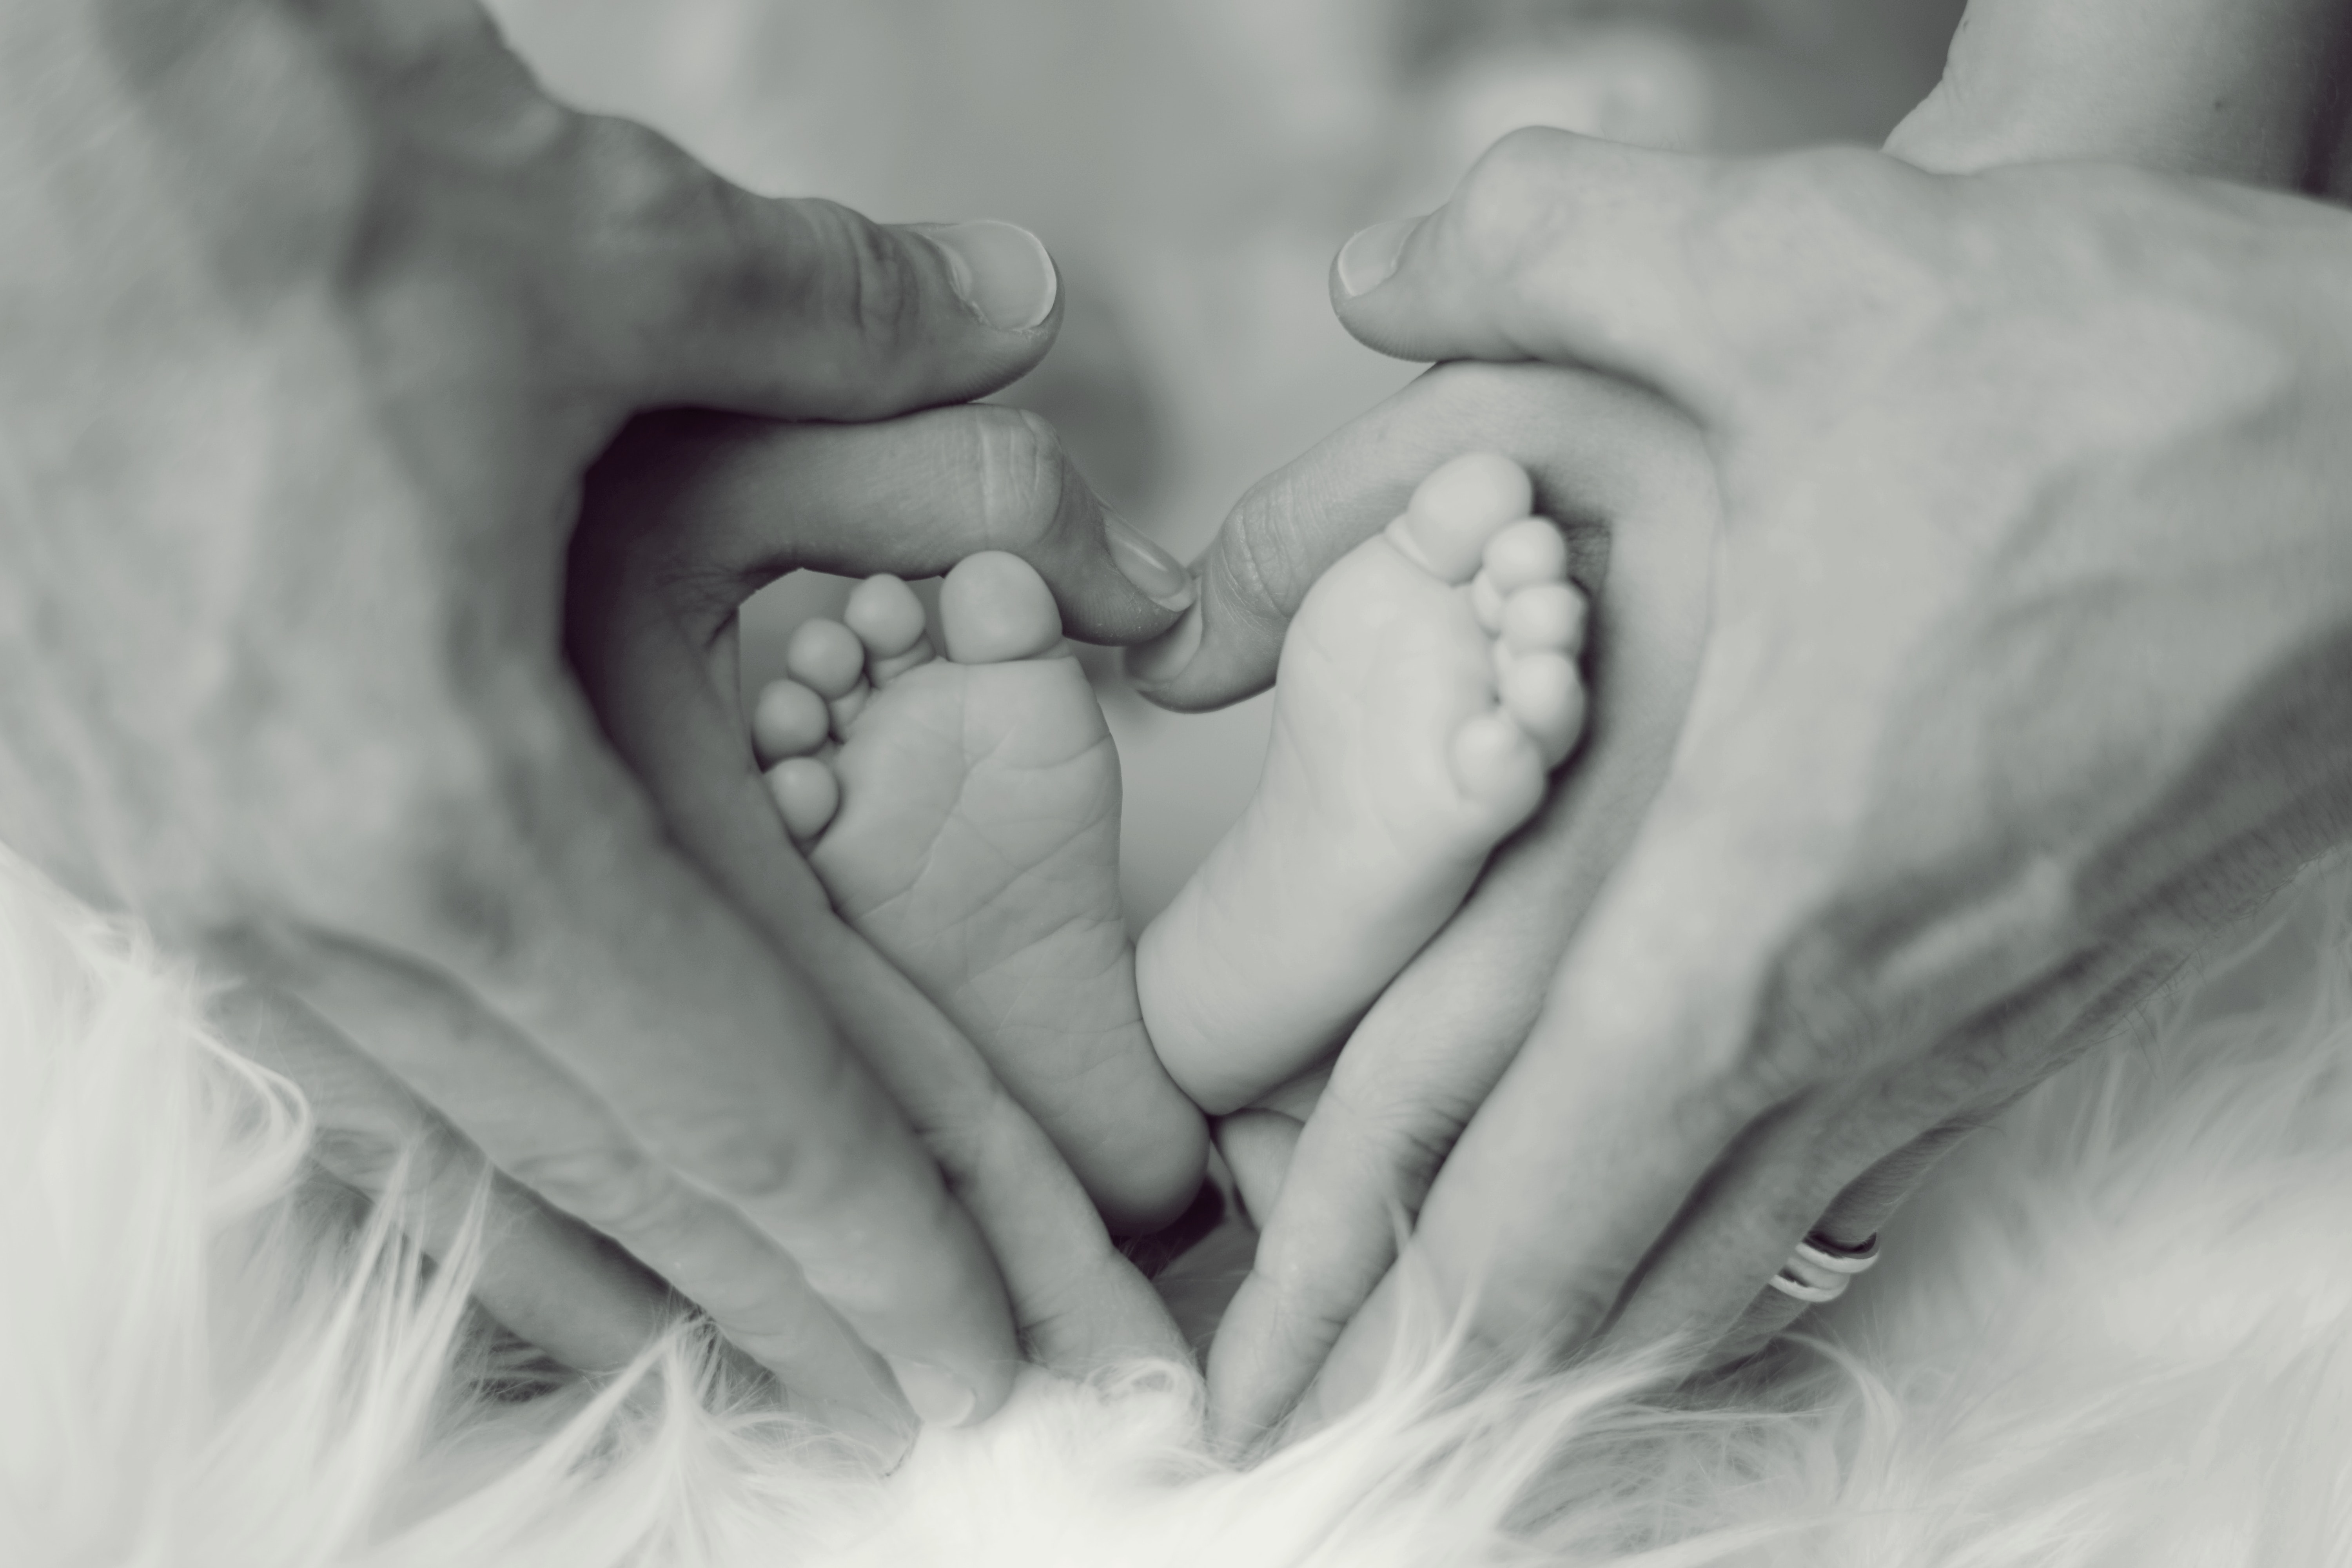 grayscale-photo-of-baby-feet-with-father-and-mother-hands-in-733881